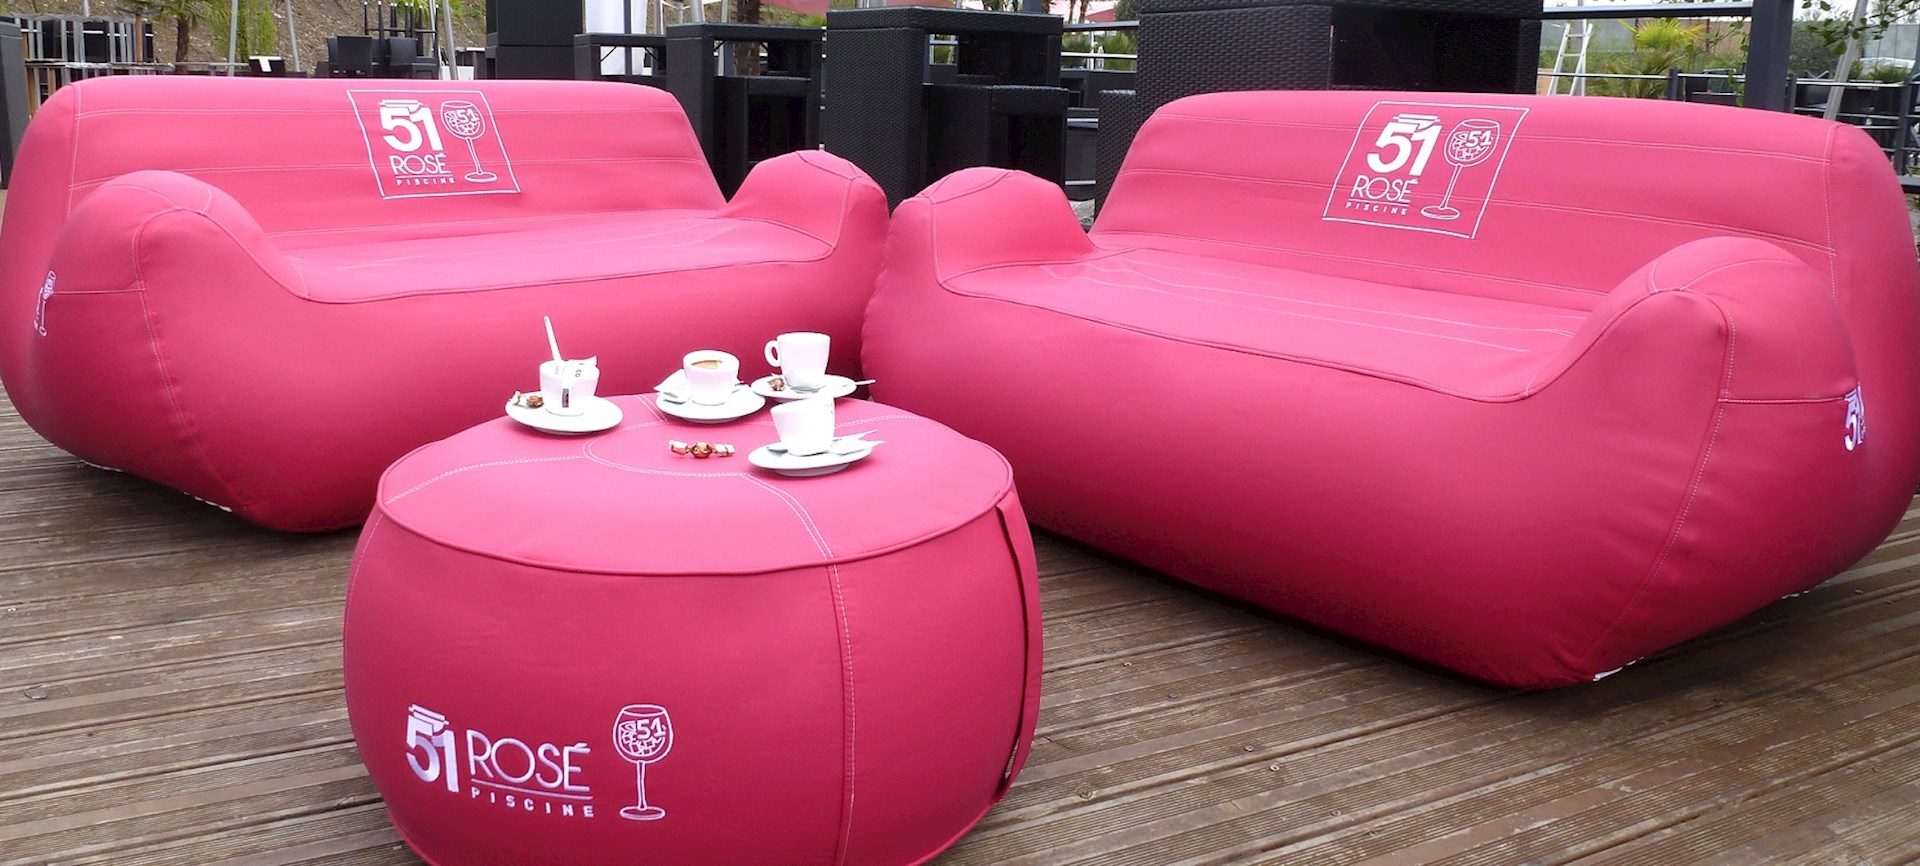 Big Inflatable Couch Inflatable Structures Event Tents Customised Ingenious